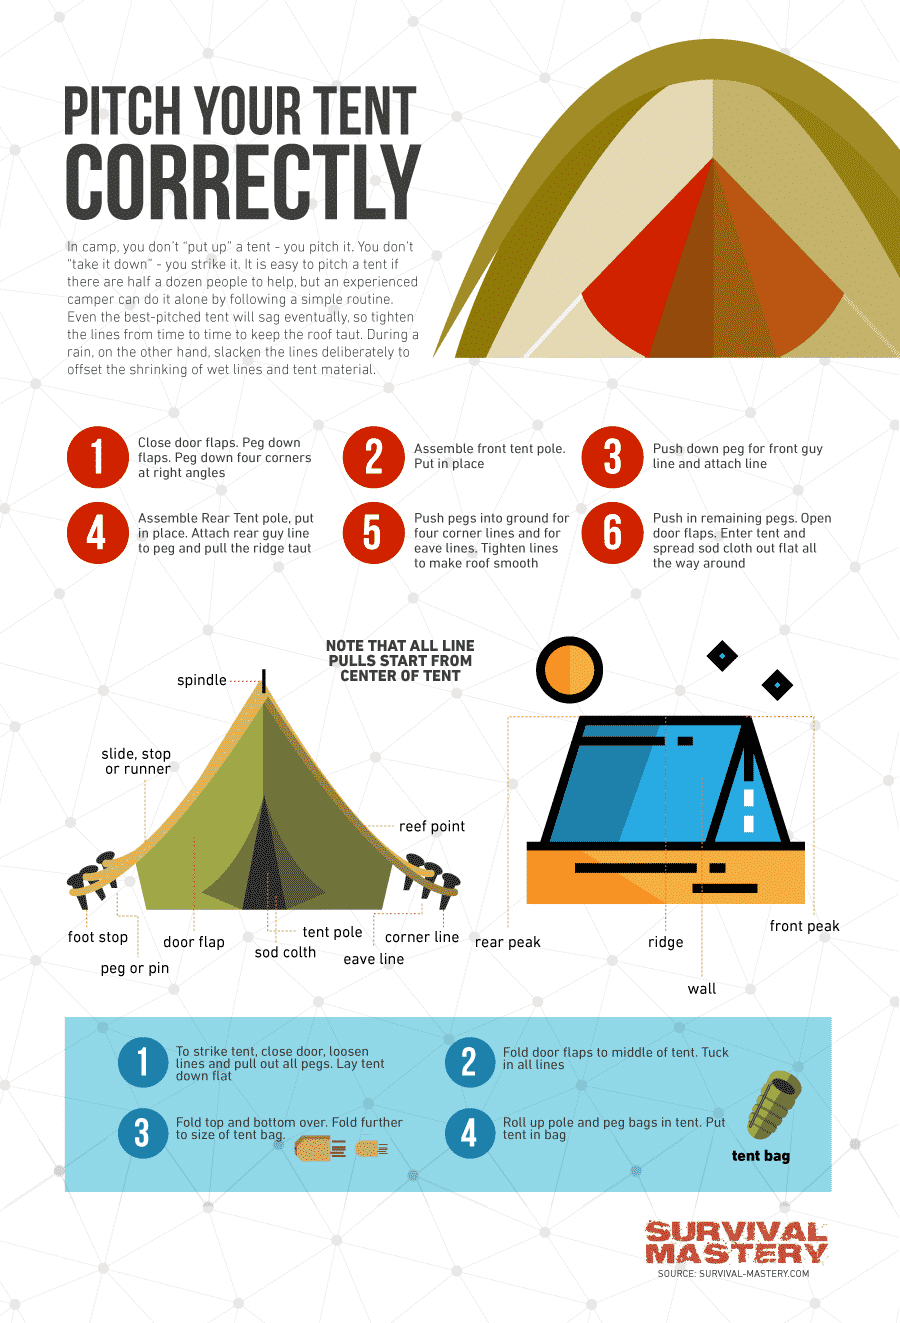 Pitch your tent infographic